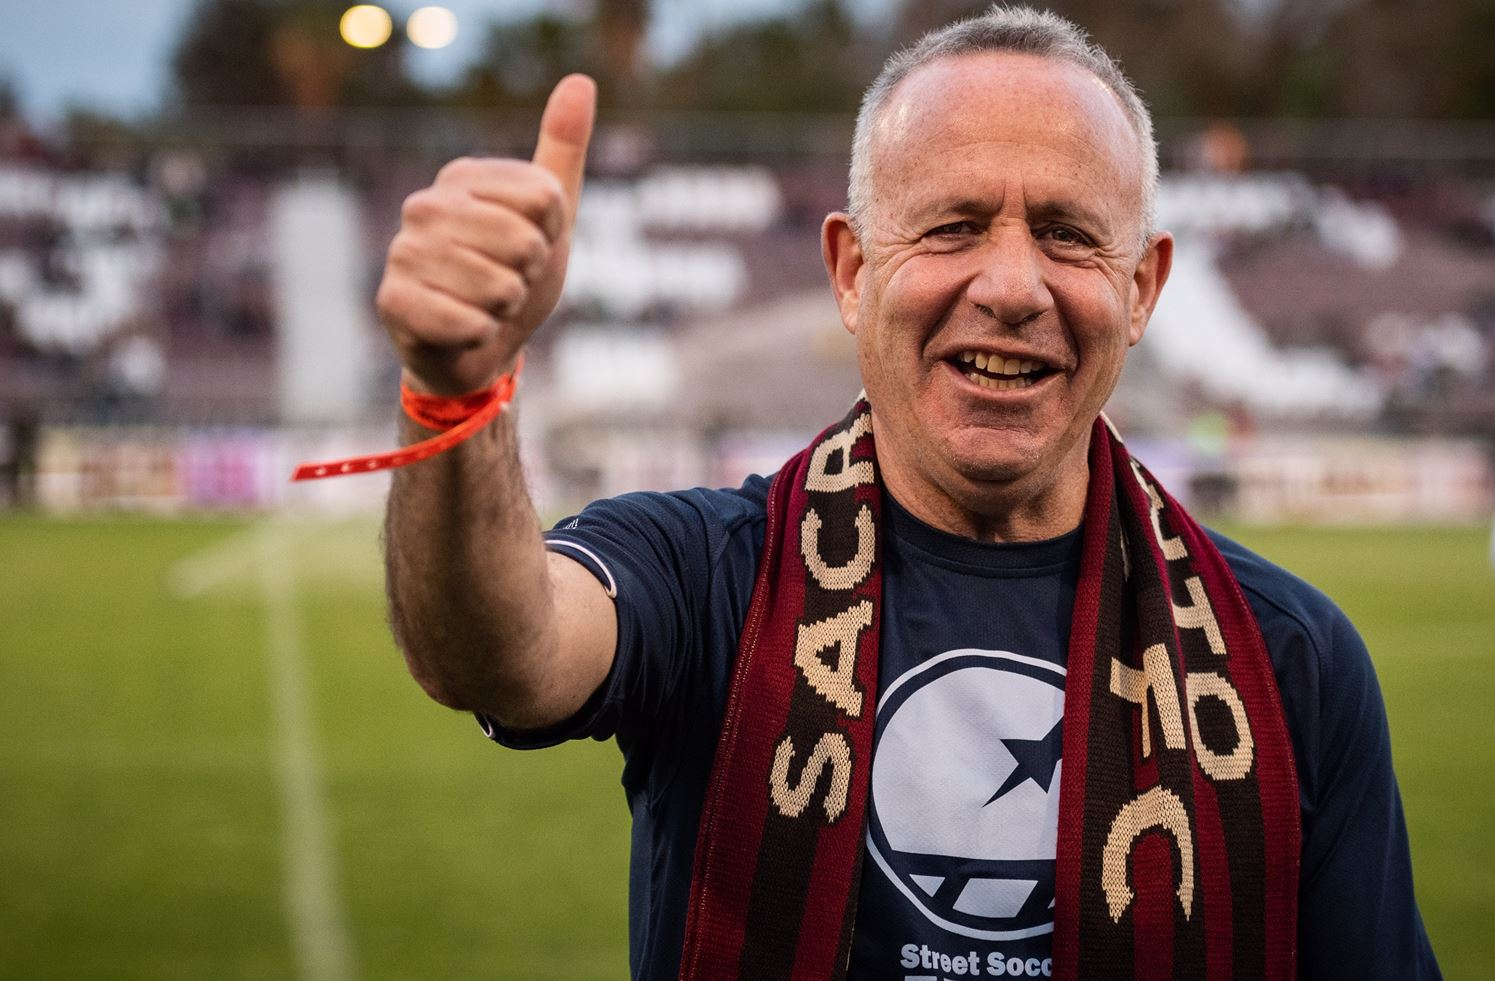 Mayor Steinberg gives the thumbs up at the Republic FC game on Saturday, April 6